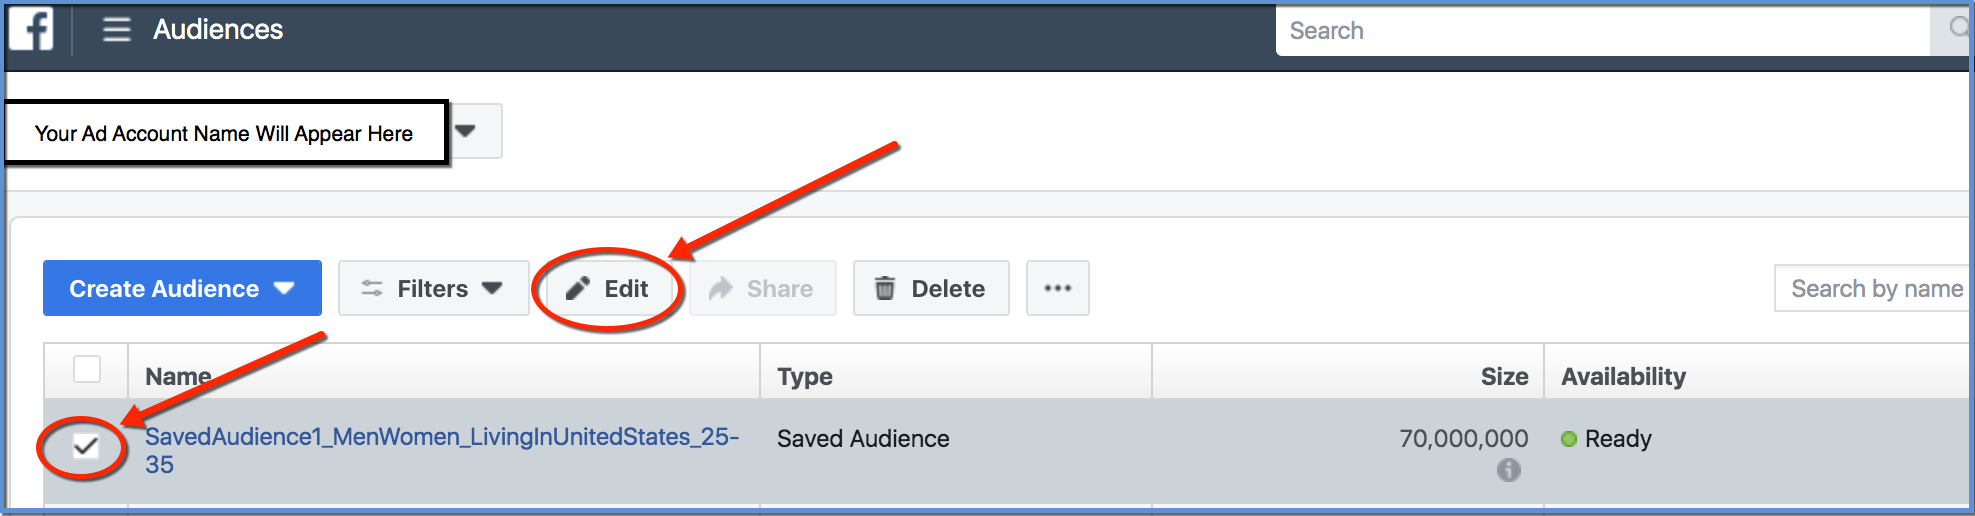 Ads Manager - Select and Edit Audience